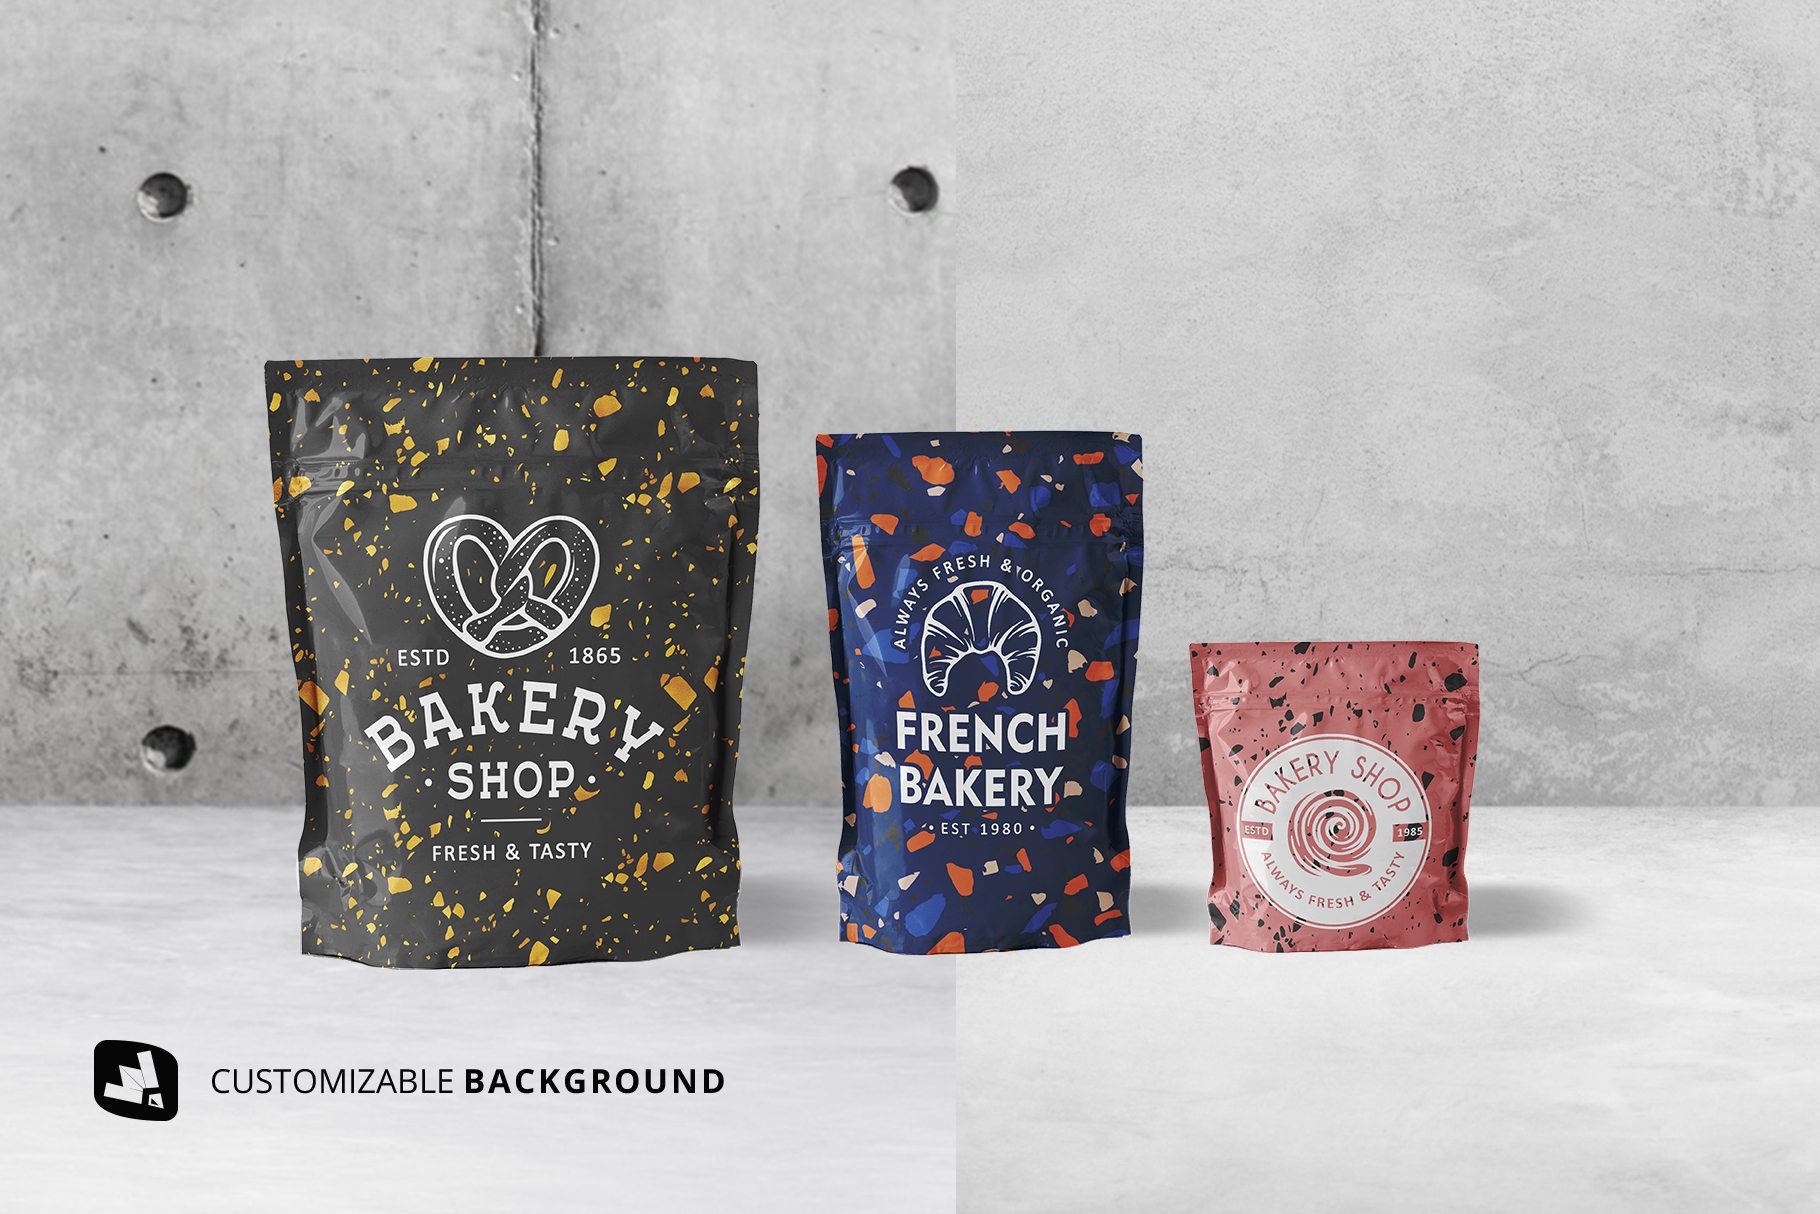 background options of the flexible food pouch packaging mockup